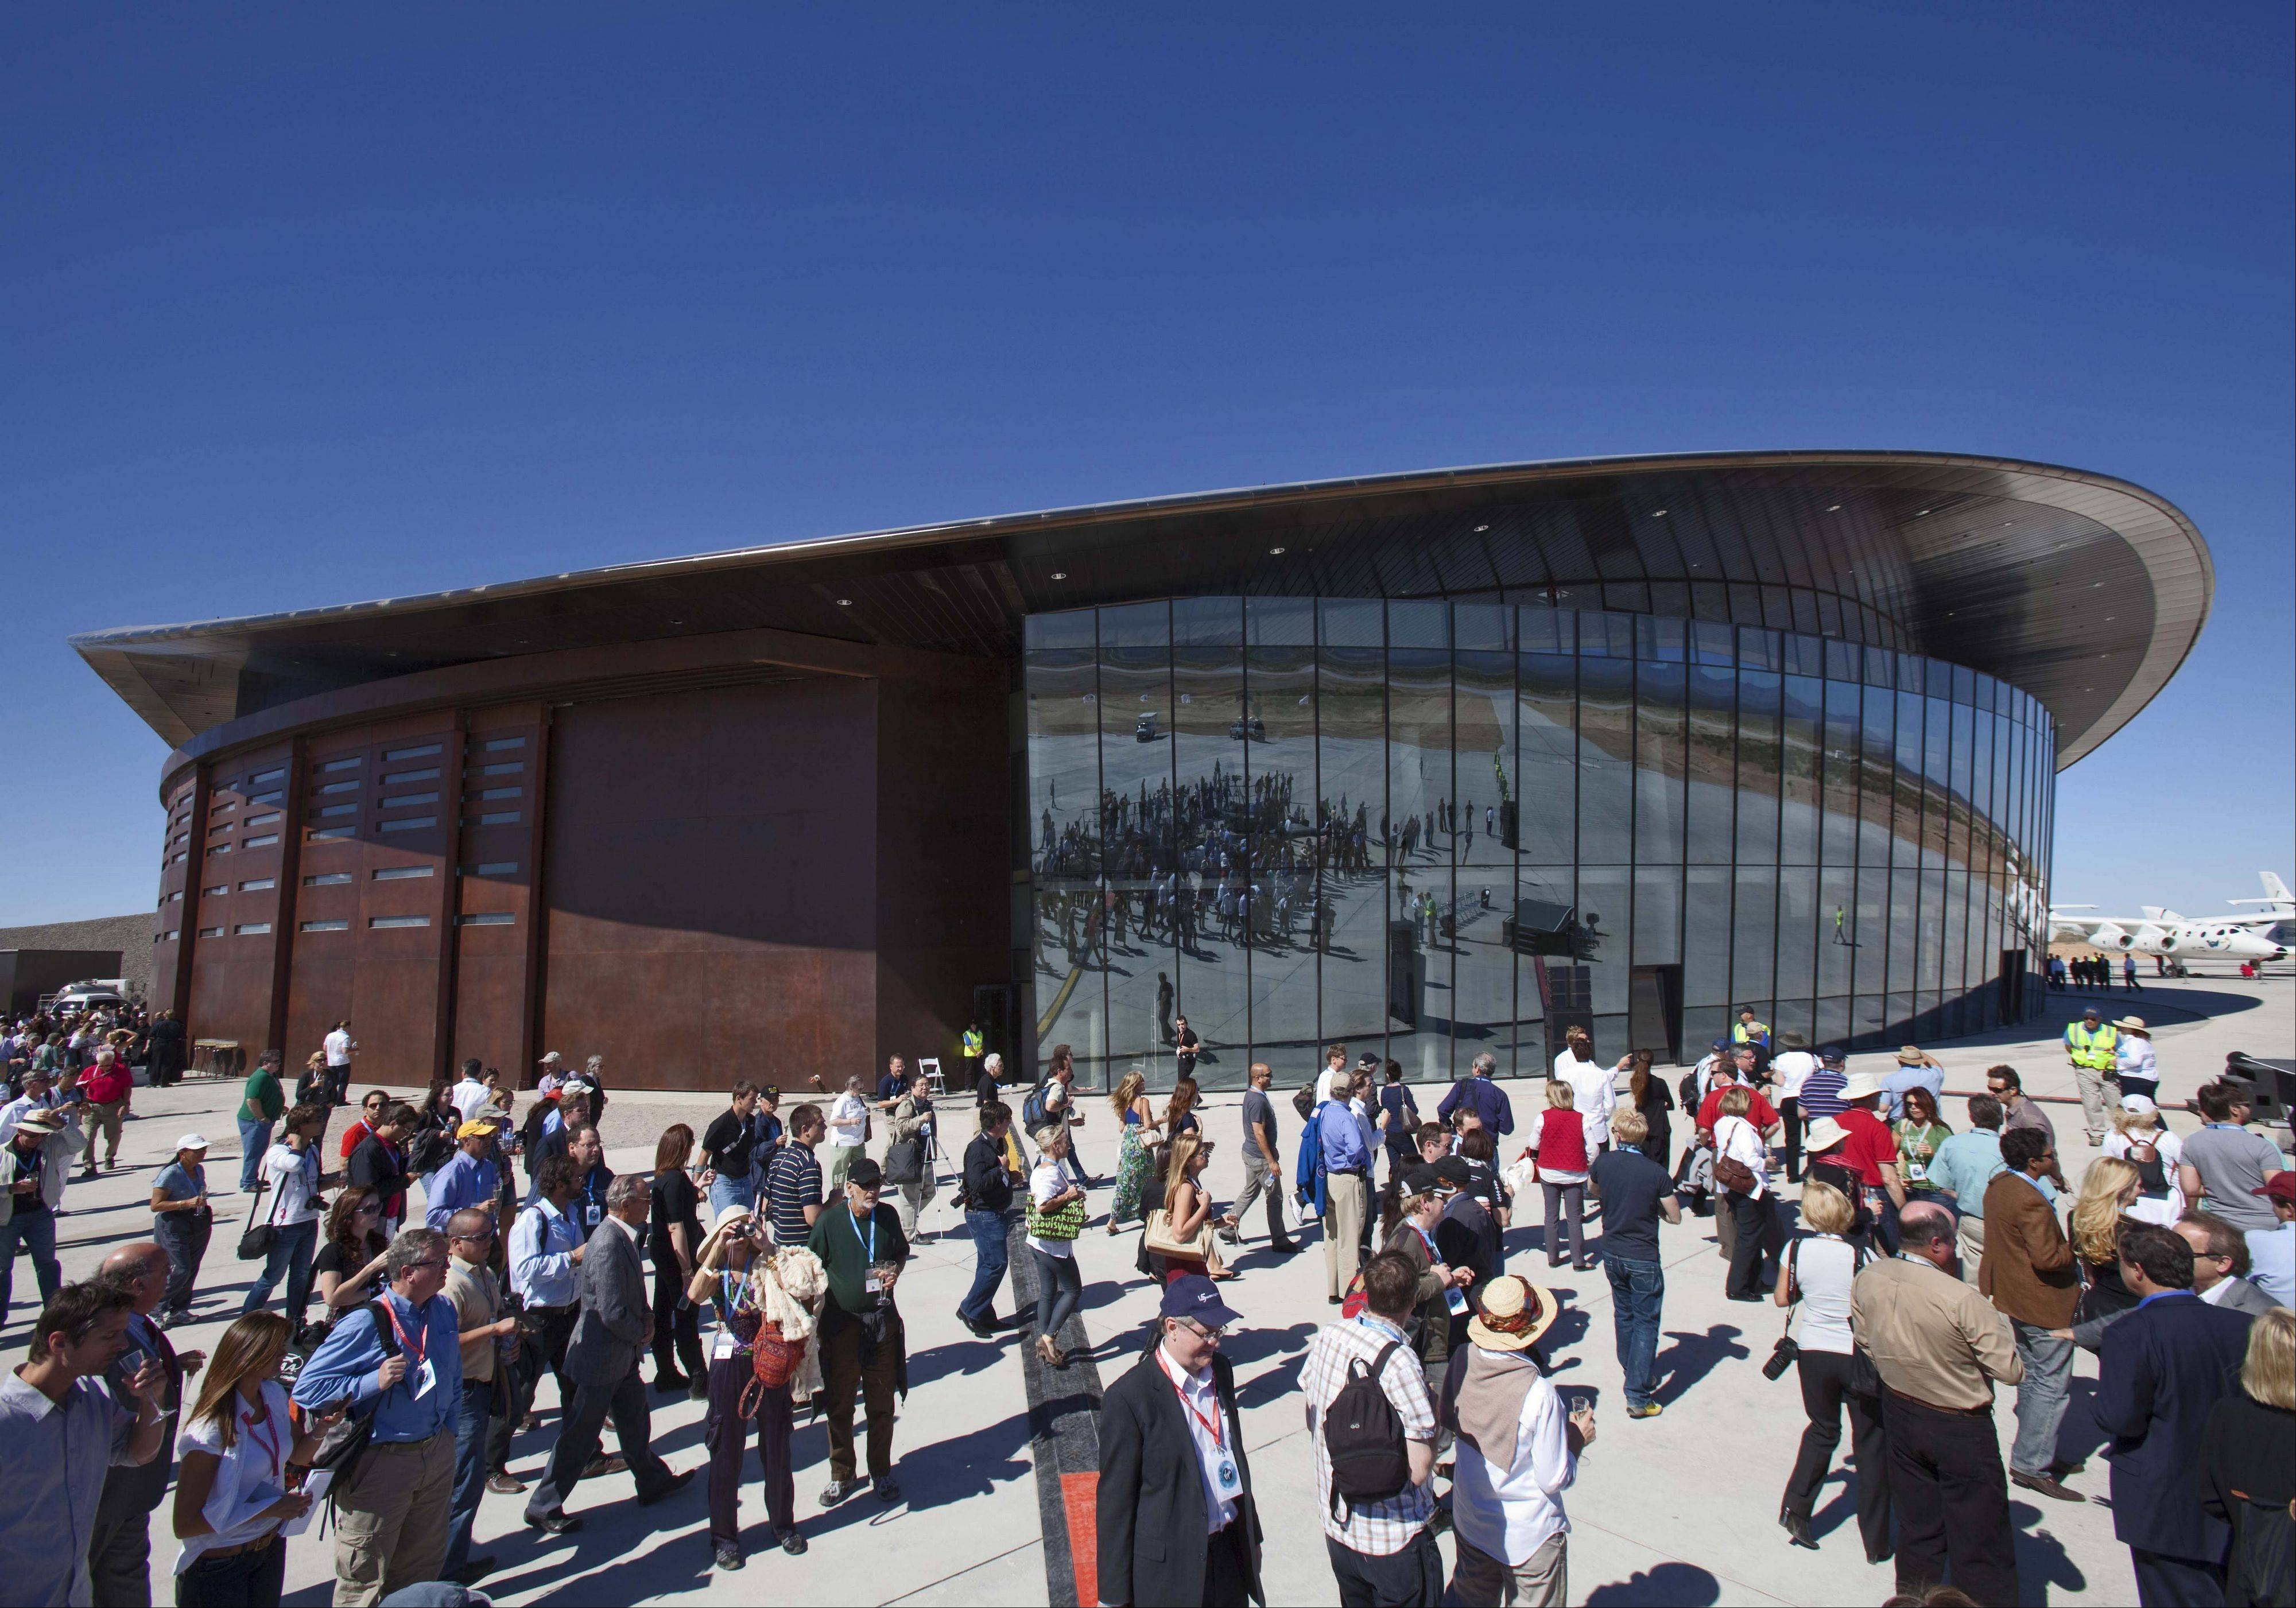 Guests stand outside the new Spaceport America hangar in Upham, N.M. Spaceport America officials are urging legislators to limit potential lawsuits from wealthy outer space tourists who take off from New Mexico, saying such a bill is crucial to the future of the project.